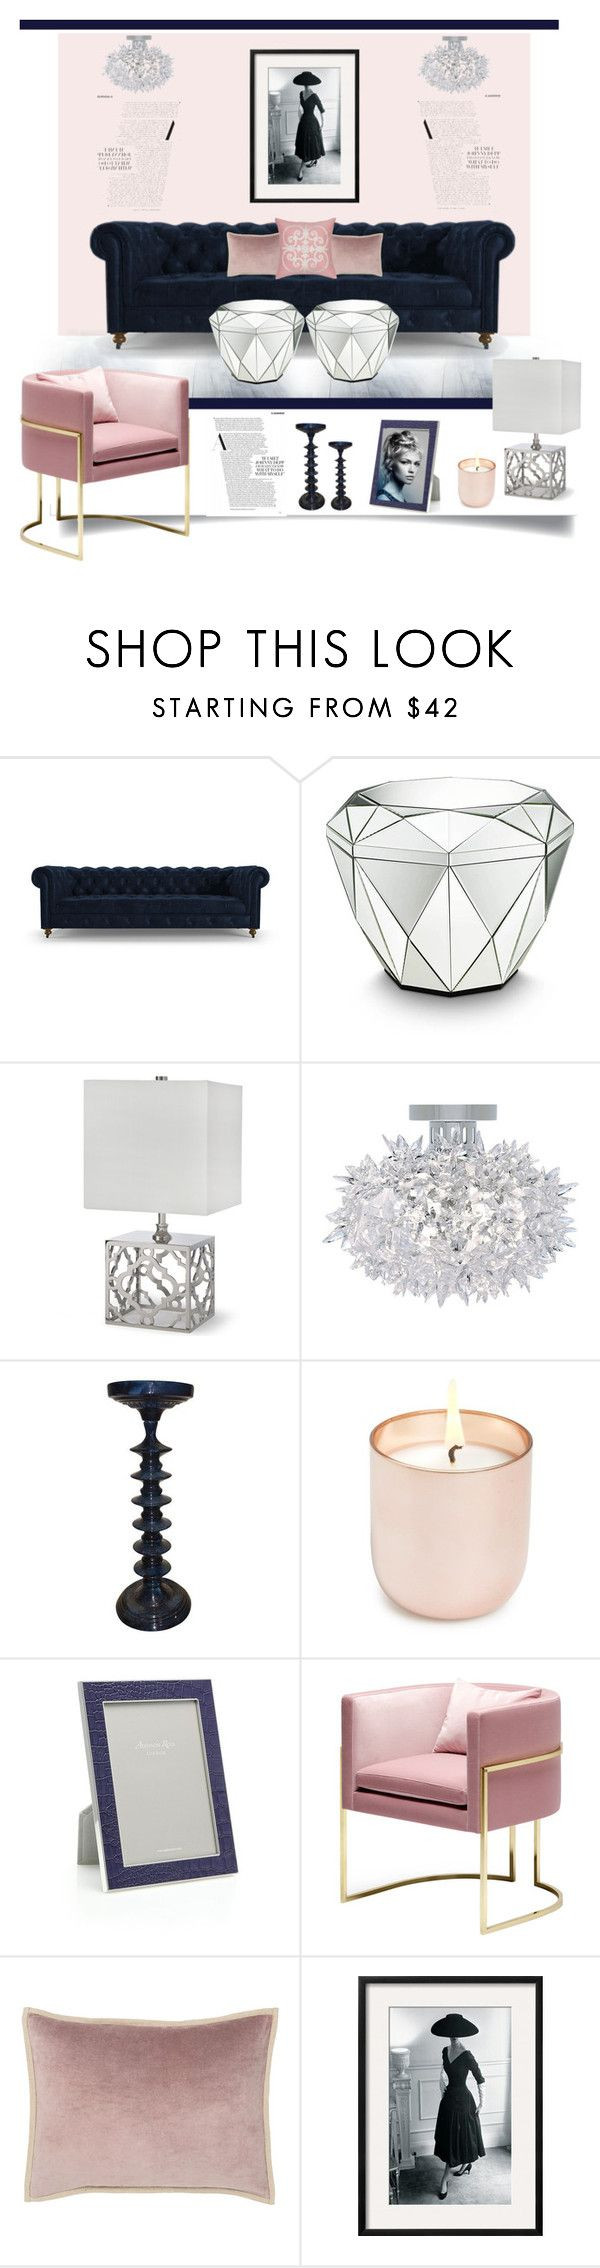 Jonathan Adler Charade Vase Of 237 Best I¸i…Œe¦¬i– Images On Pinterest Tea Time Dish Sets and the Tea within A Feminine touch by Dianefantasy On Polyvore Featuring Interior Interiors Interior A· Jonathan Adlerinterior